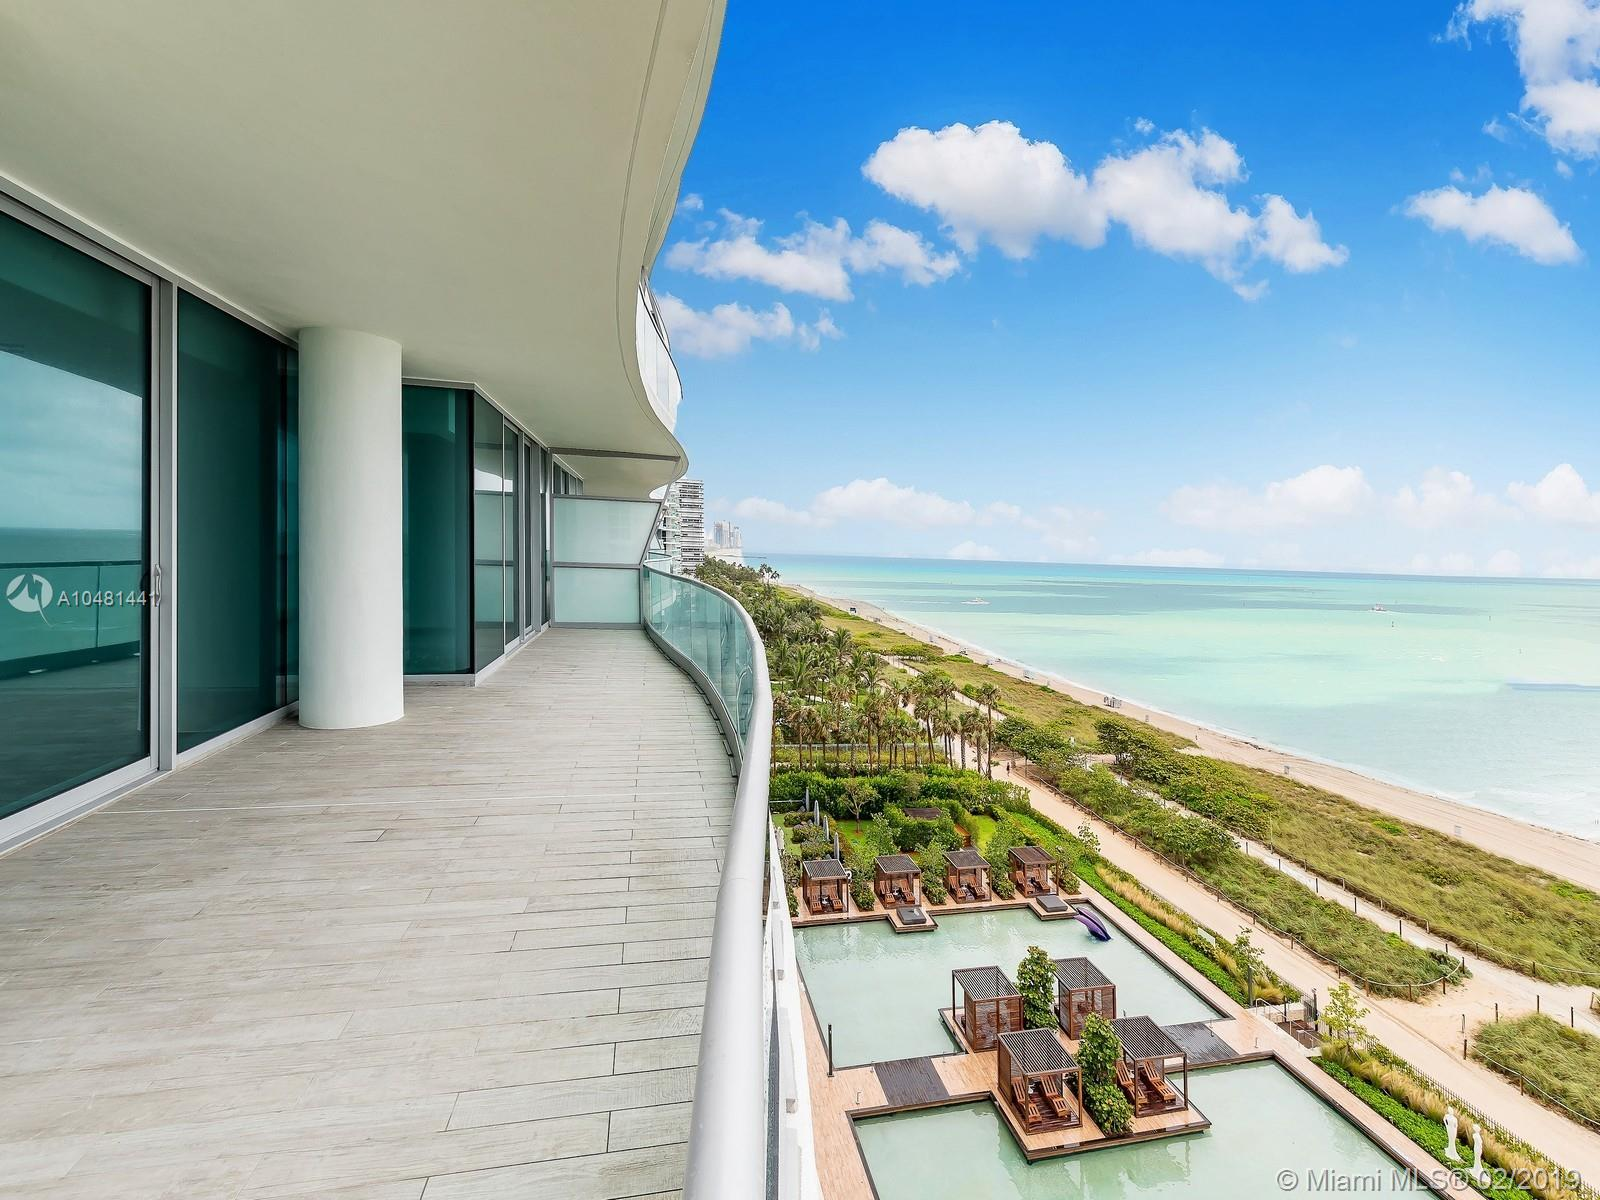 Stunning Miami Beach Direct Oceanfront Condo In Chateau Fendi, Fendi+Ógé¼Gäós Only Branded Condo In The World Featuring 300 Feet Of Oceanfront And Complete Flow Through Views In Each Unit. As A Decorator Ready Unit, This Space Can Be Complete To One+Ógé¼Gäós Own Preferences. Featuring 4, 487 Sf Of Interior Space And 6, 086 Sf Including The Balconies, As Well As 4 Bedrooms And 4.5 Bathrooms, This Spacious Unit Is Only One Of 58 In The Exclusive Boutique Building. Enjoy 5-Star Amenities Such As Luxury Attach+Â-¬, Concierge, Poolside Bar & Restaurant, Private Beach Club, Wine Vault, 24H Security And Valet, Library, Business Center, Theater, Spa & Gym. Located Walking Distance From Bal Harbour Shops.